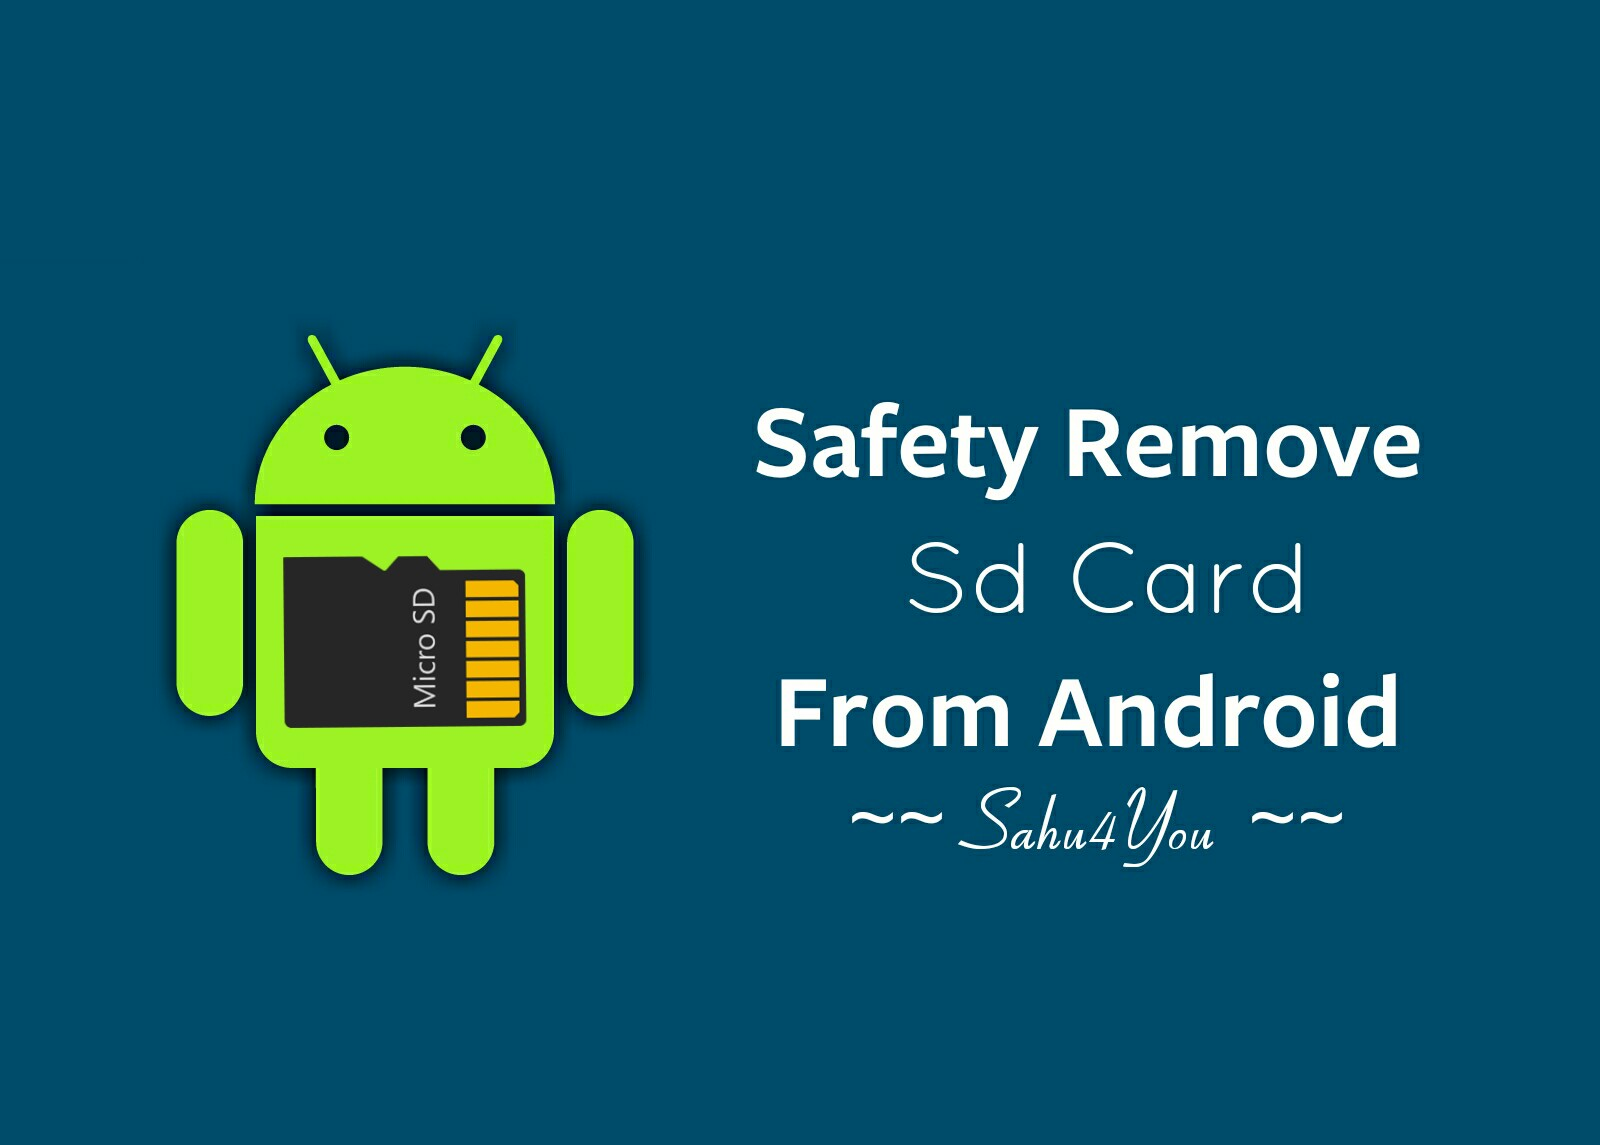 How To Hide/Remove Sd Card On Android (Safety Trick)